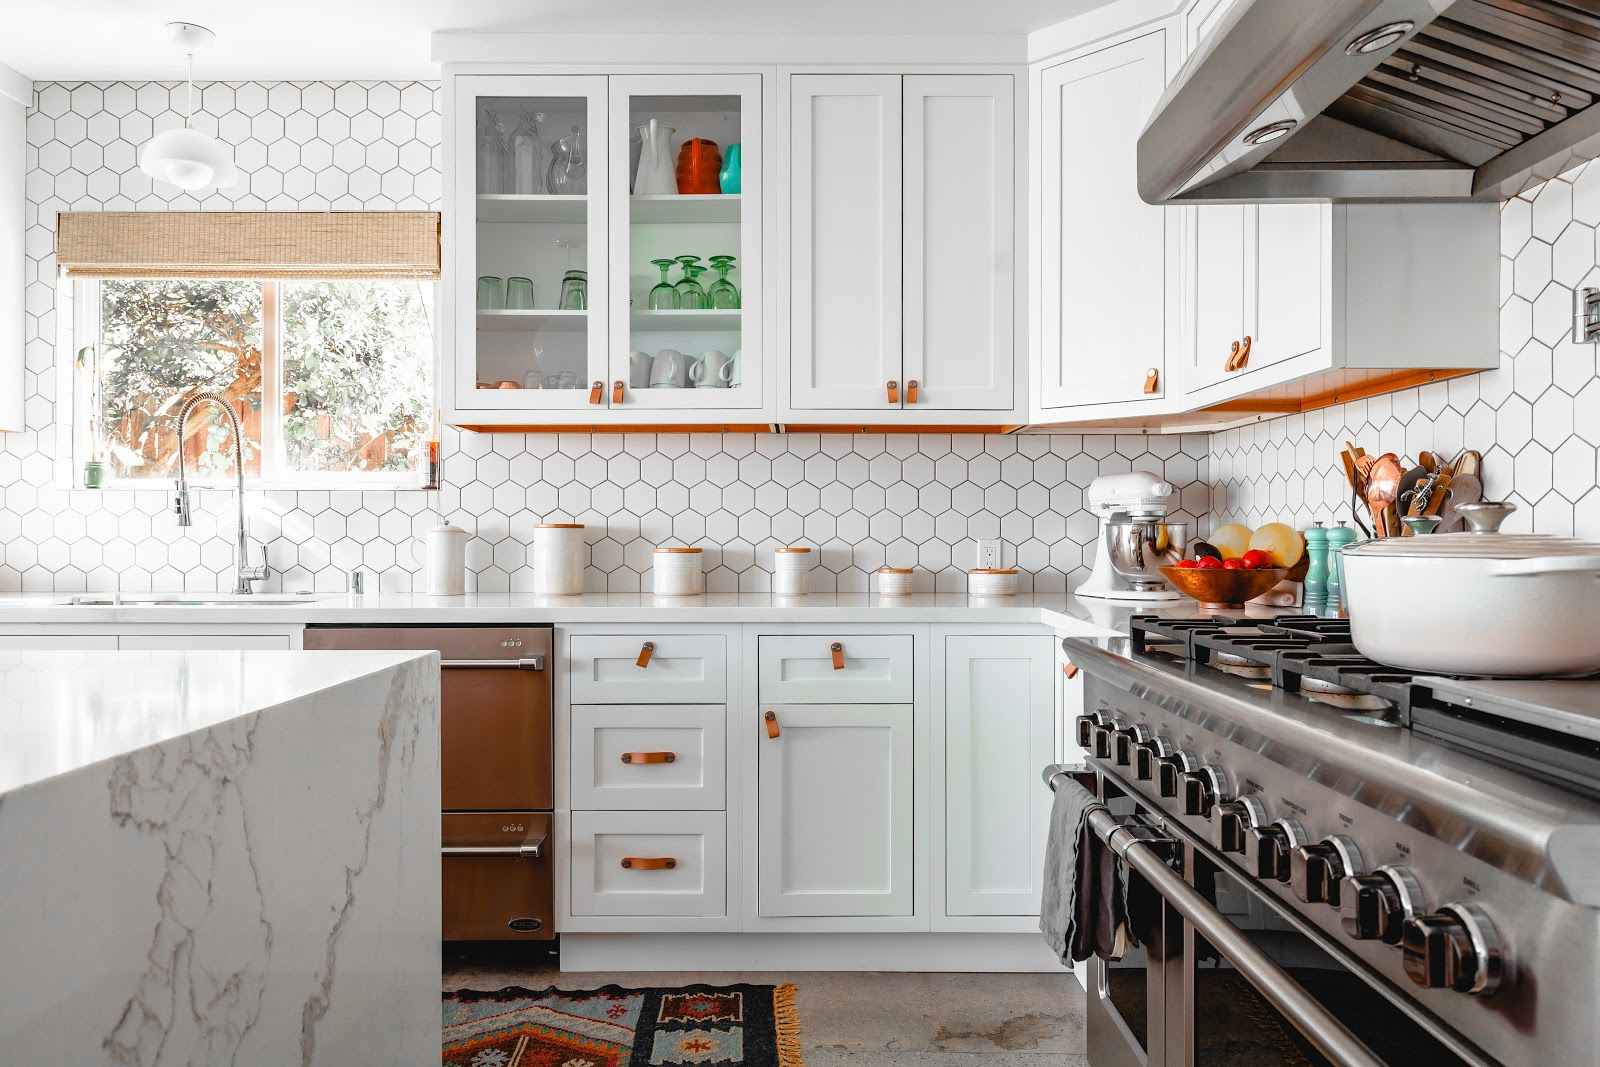 Identifying useful ideas to upgrade your kitchen